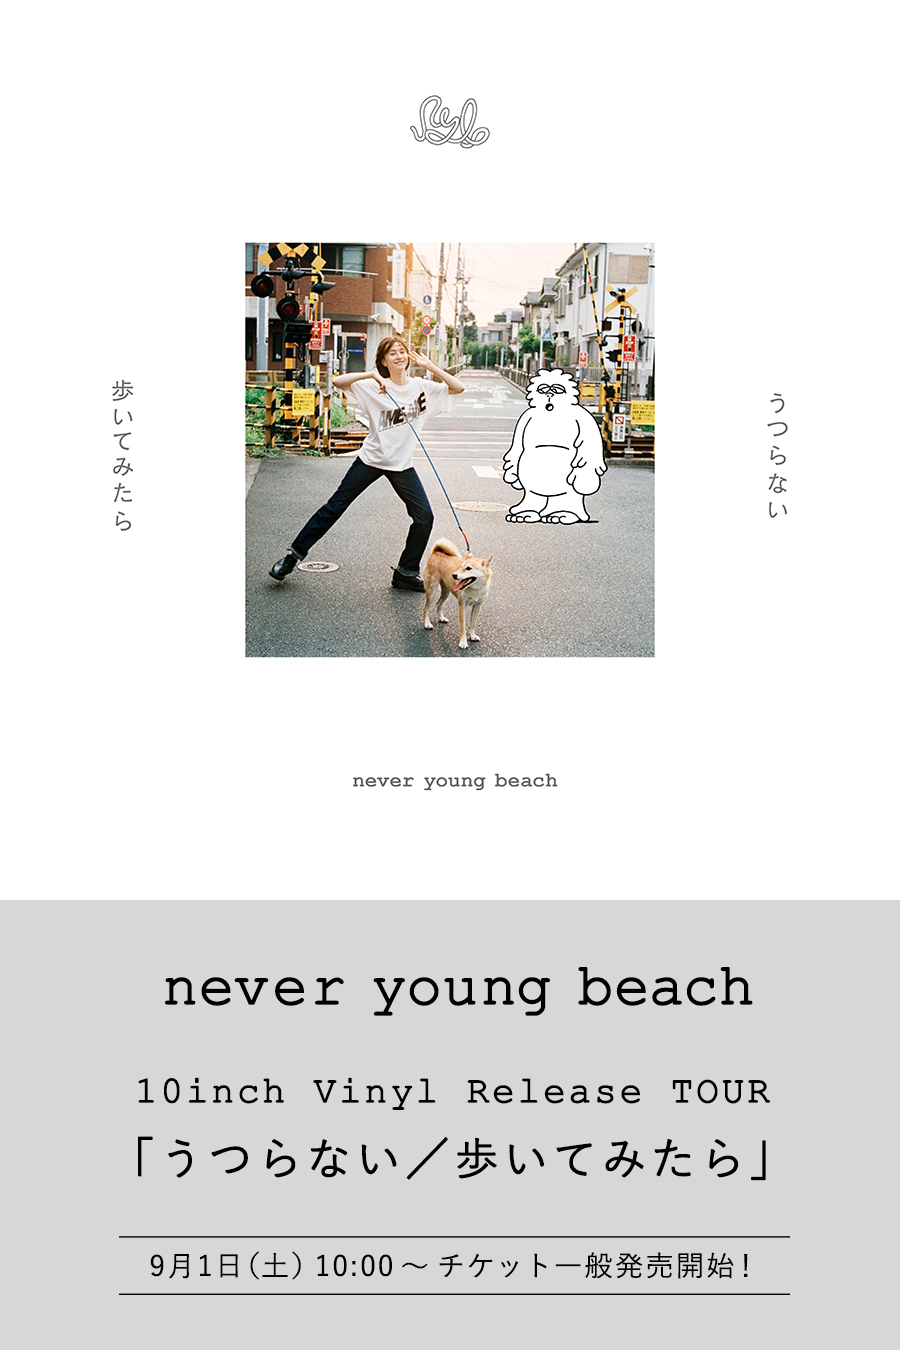 【SP】TICKET04 never young beach